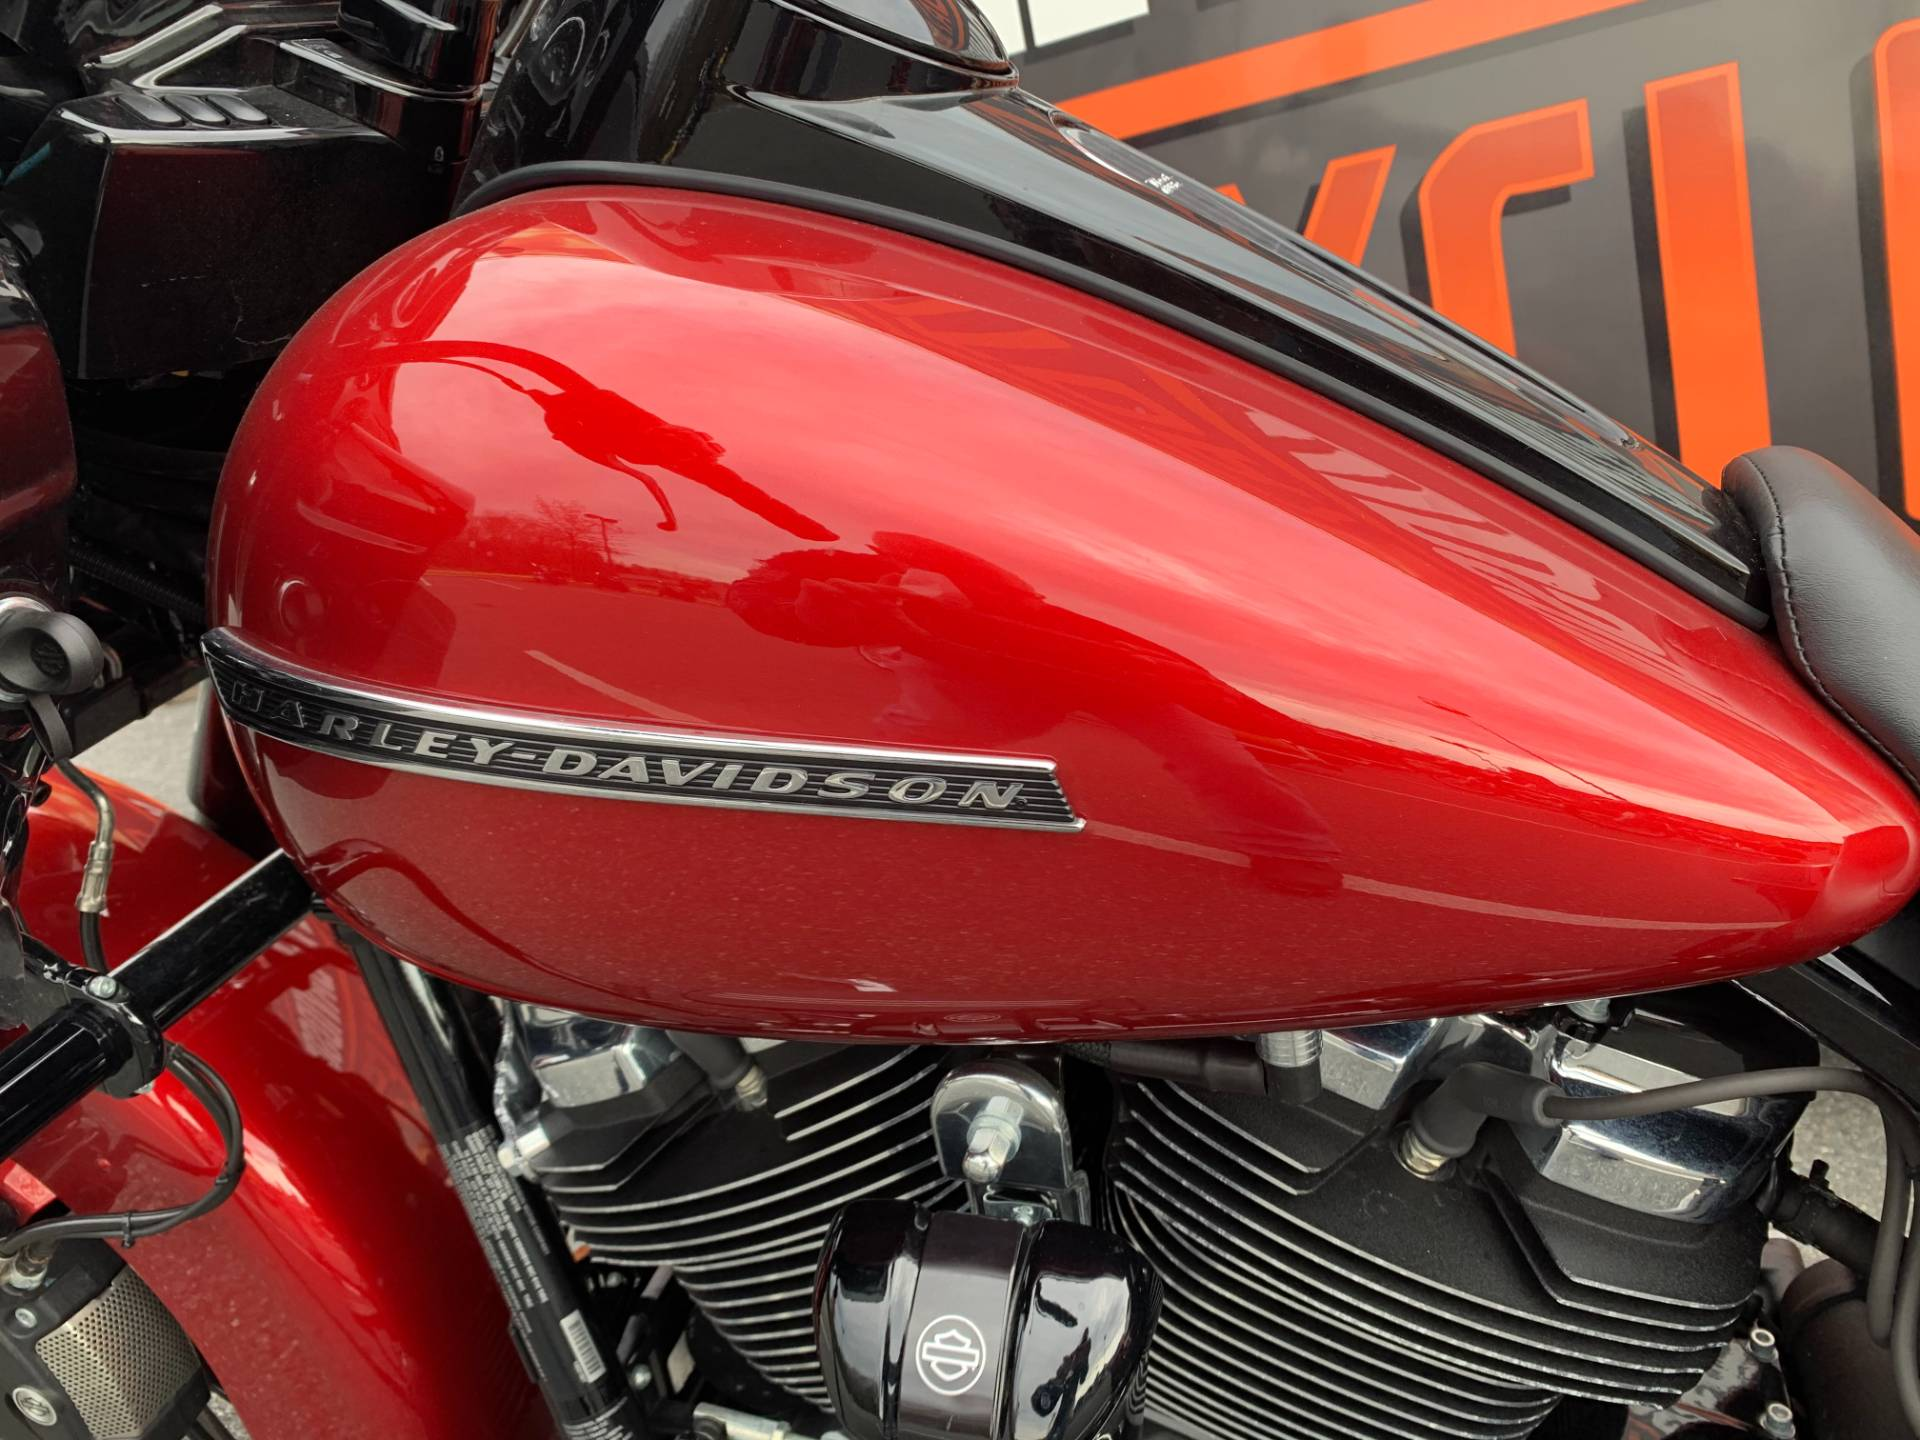 2018 Harley-Davidson Road Glide® Special in Fredericksburg, Virginia - Photo 12